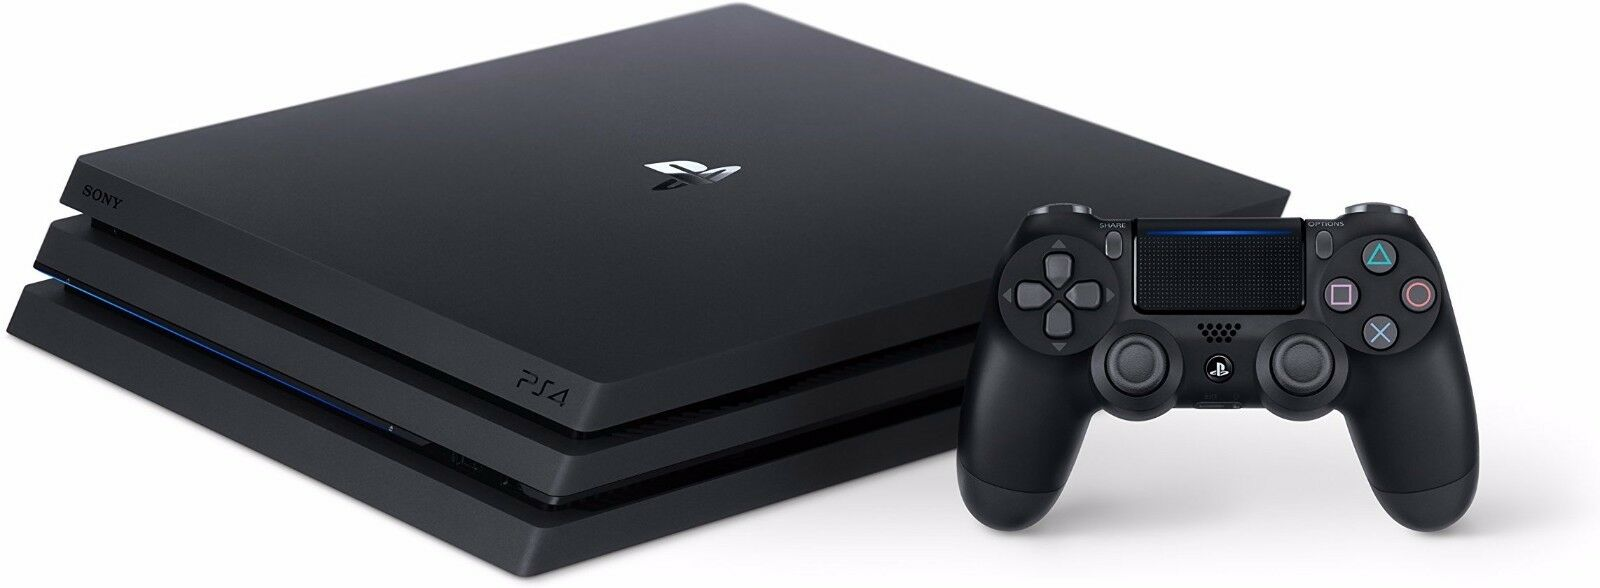 $359.99 - Sony PlayStation 4 Pro 1TB Console PS4 Pro Brand NEW